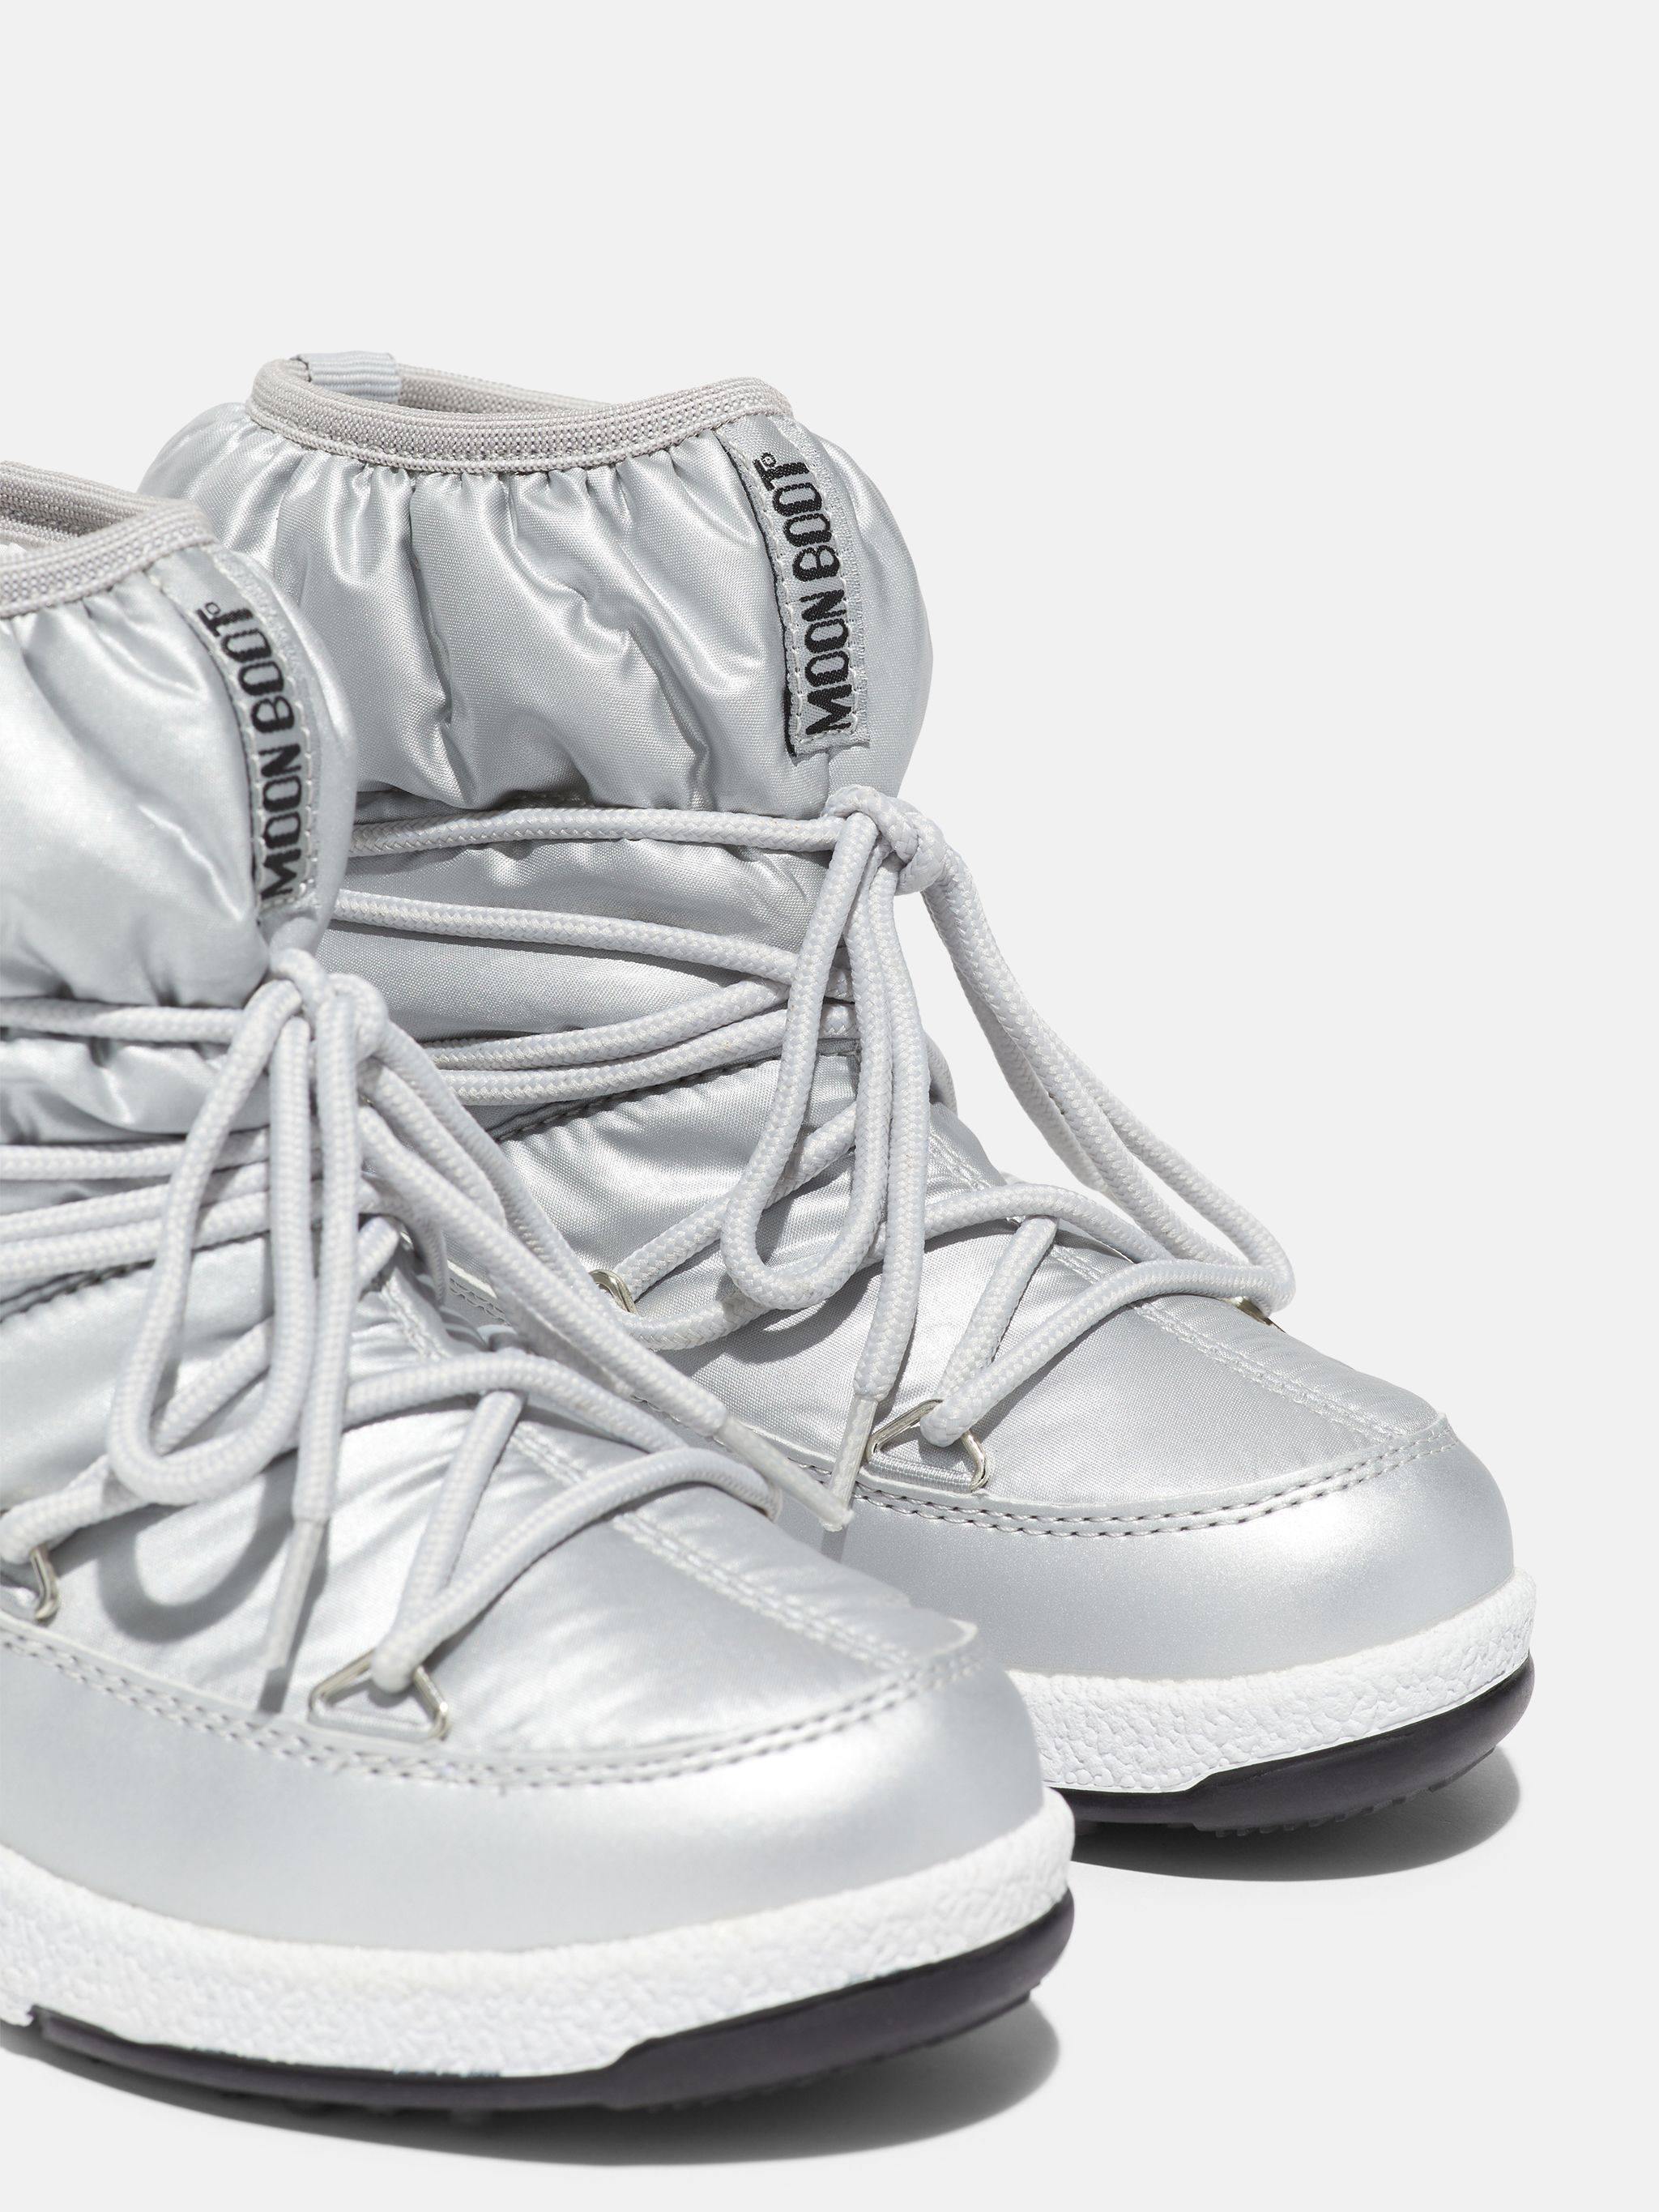 PROTECHT JUNIOR LOW SILVER NYLON BOOTS